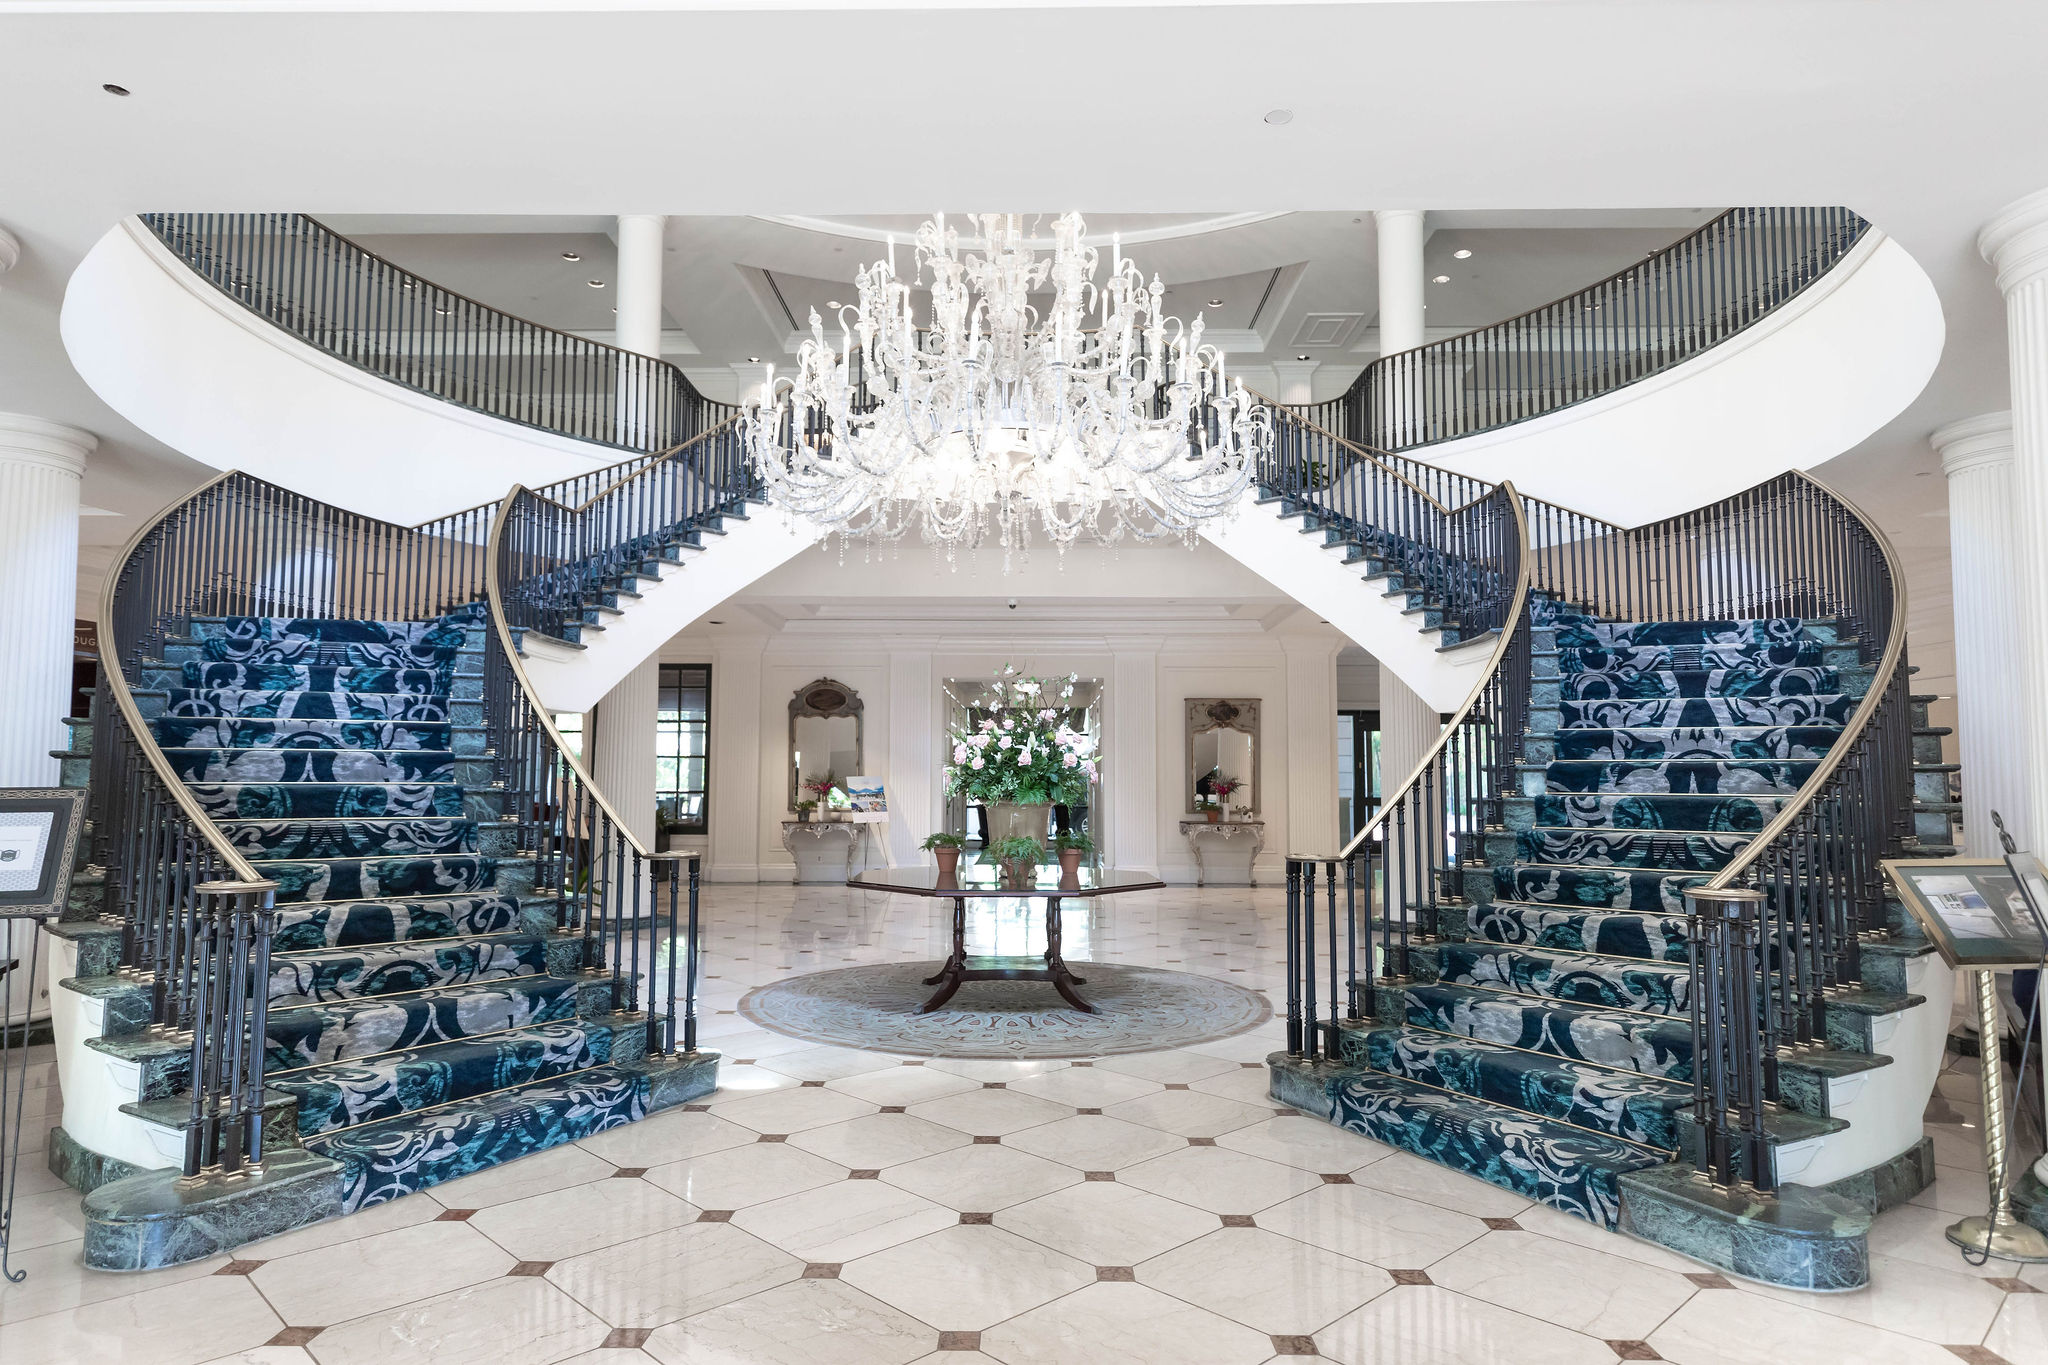 Marble Staircase at Belmond Charleston Place luxury Hotels of the World South Carolina Resorts Written & Photographed by Annie Fairfax